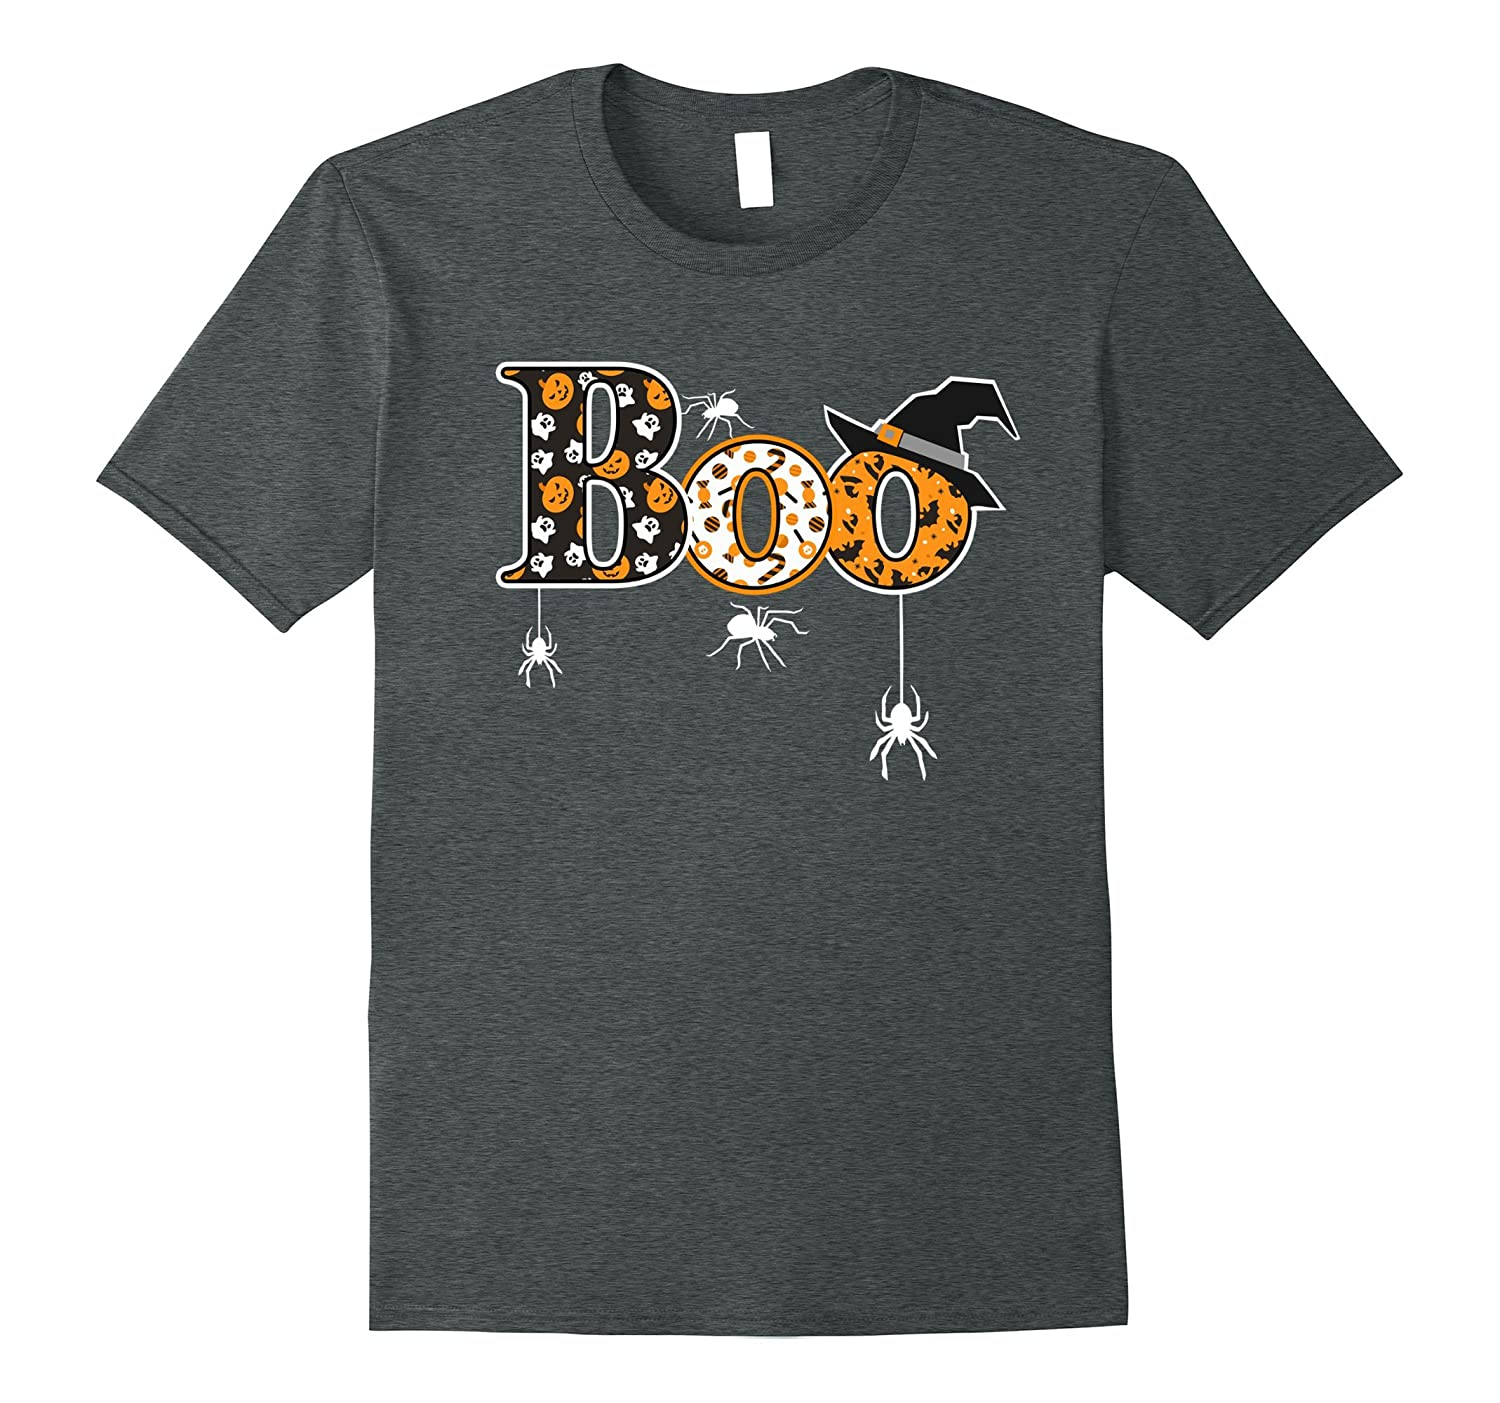 Boo Halloween T-Shirt With Spiders And Witch Hat-FL